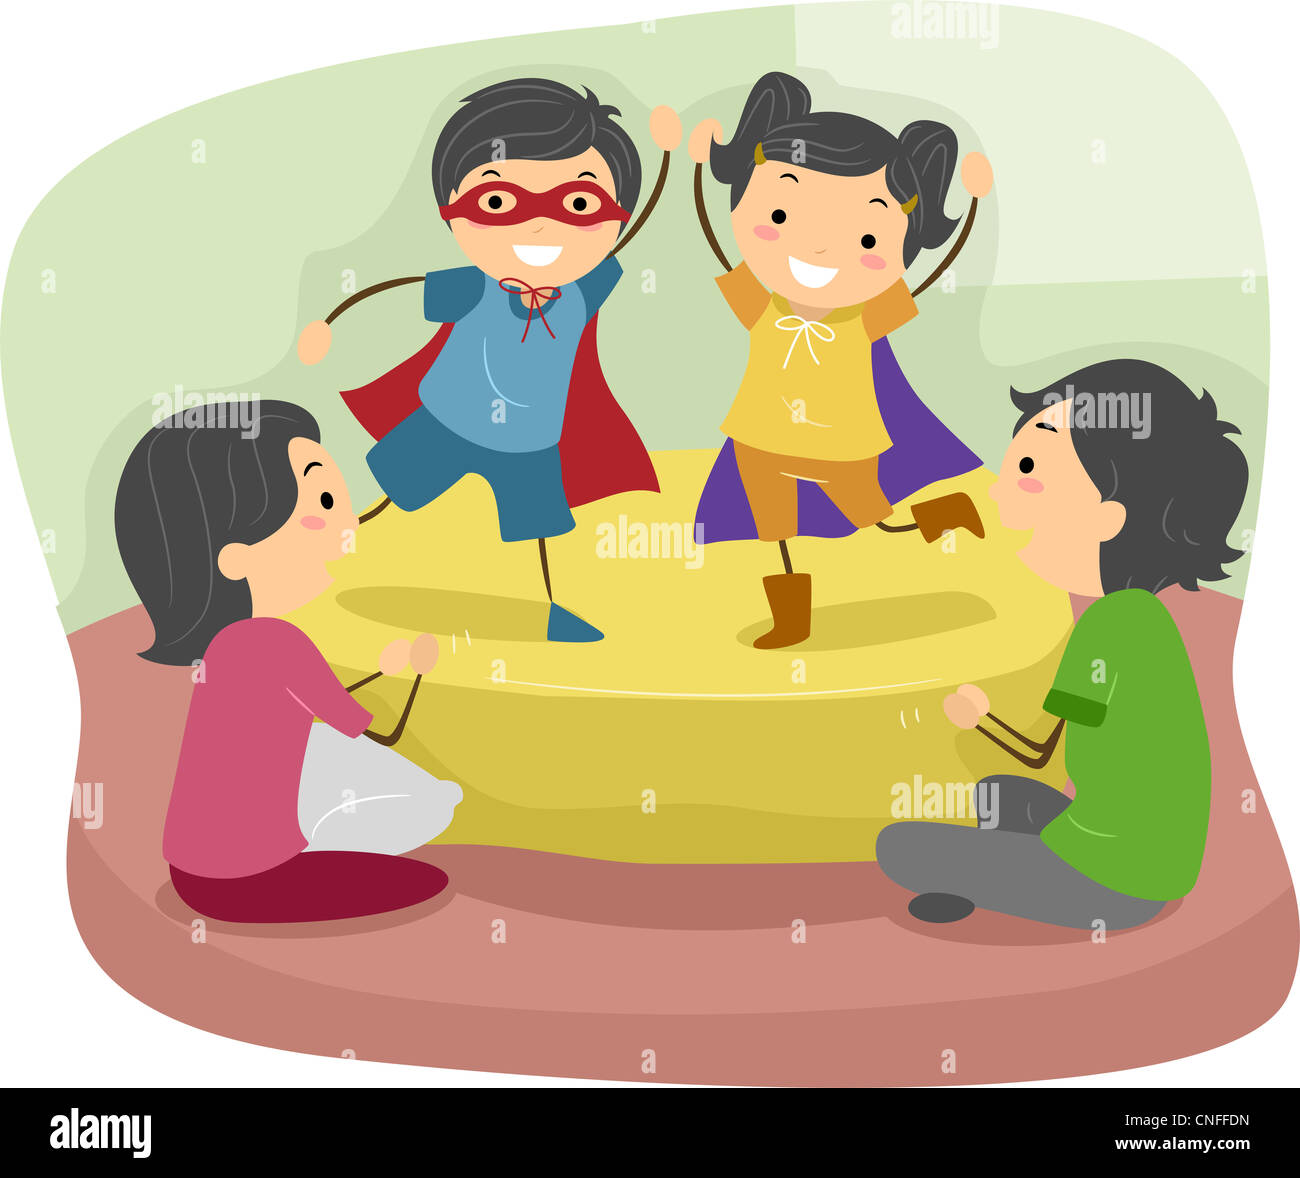 Illustration of Kids Doing a Role Play in Front of their